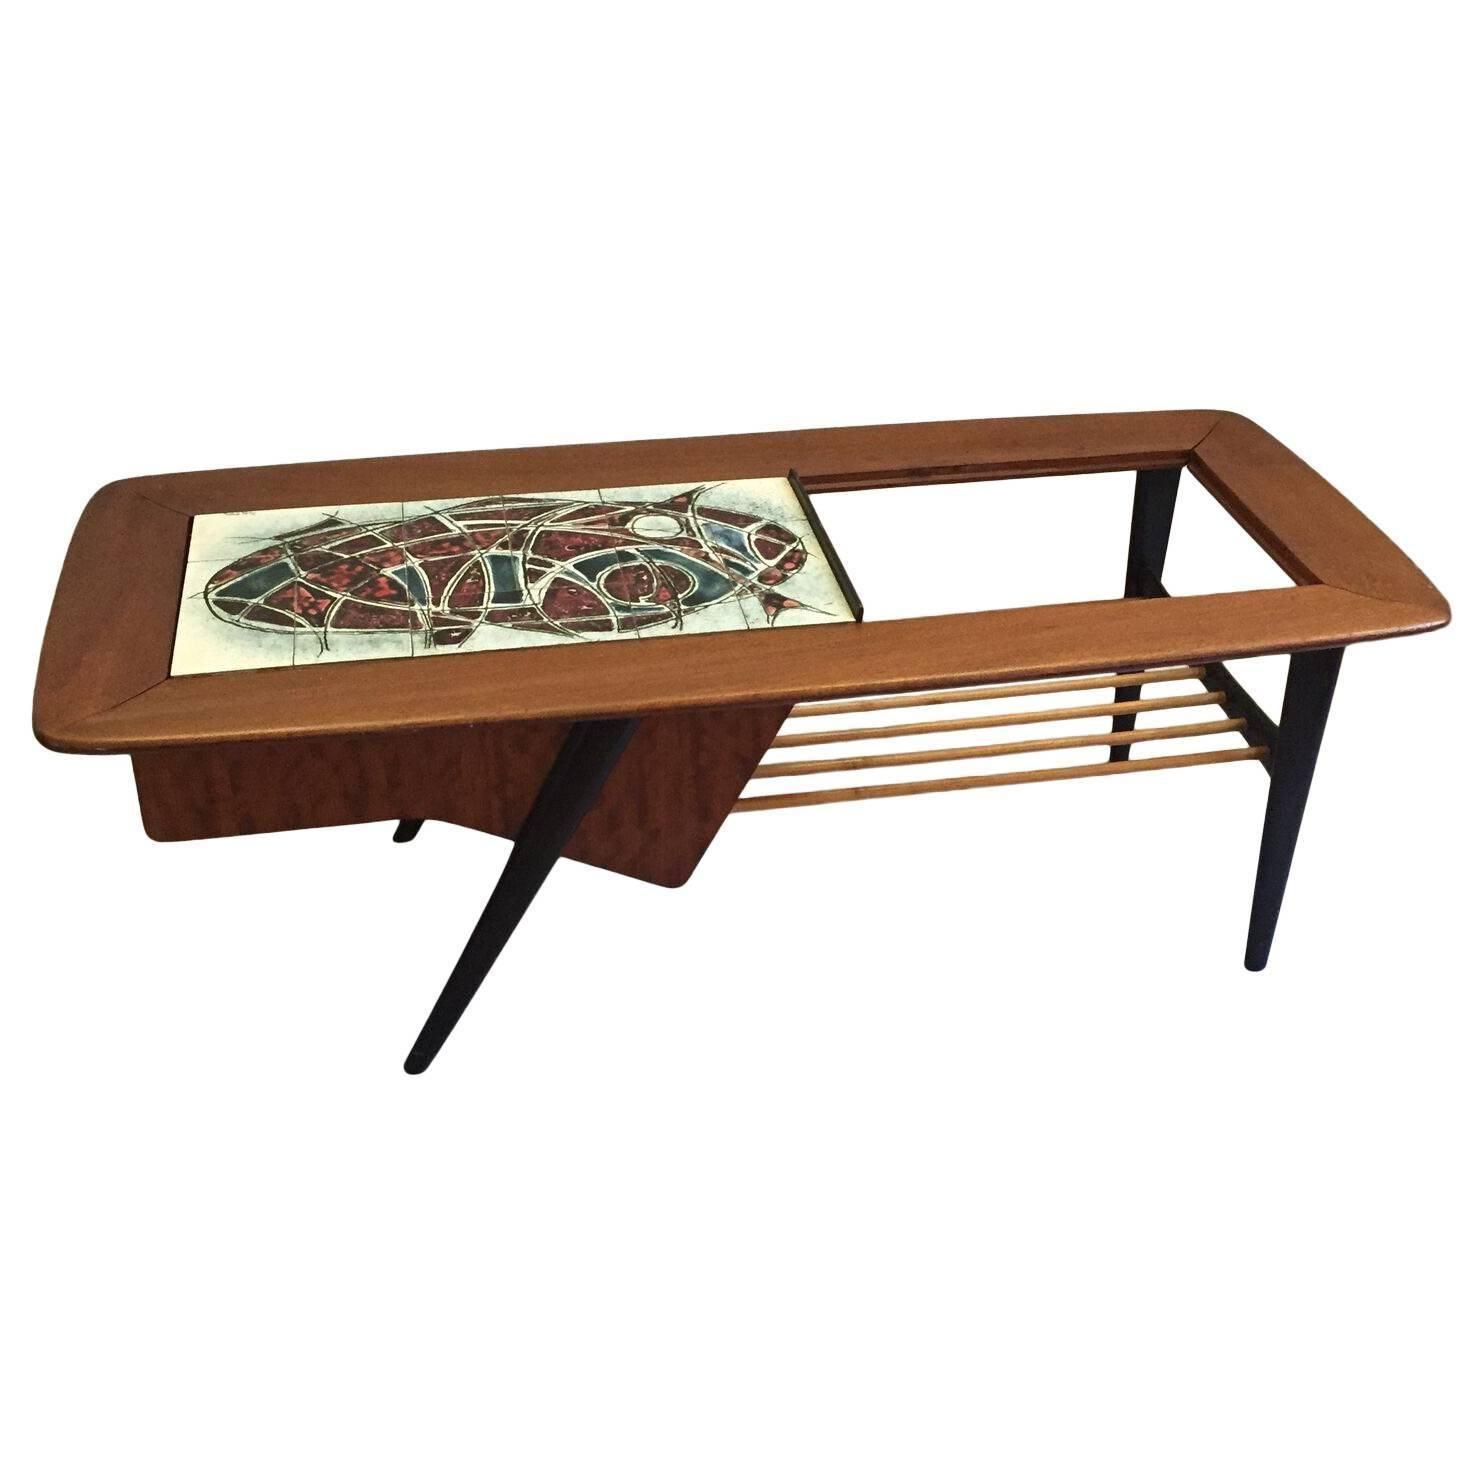 Alfred Hendrickx Coffee Table for Belform Belgium 1950s